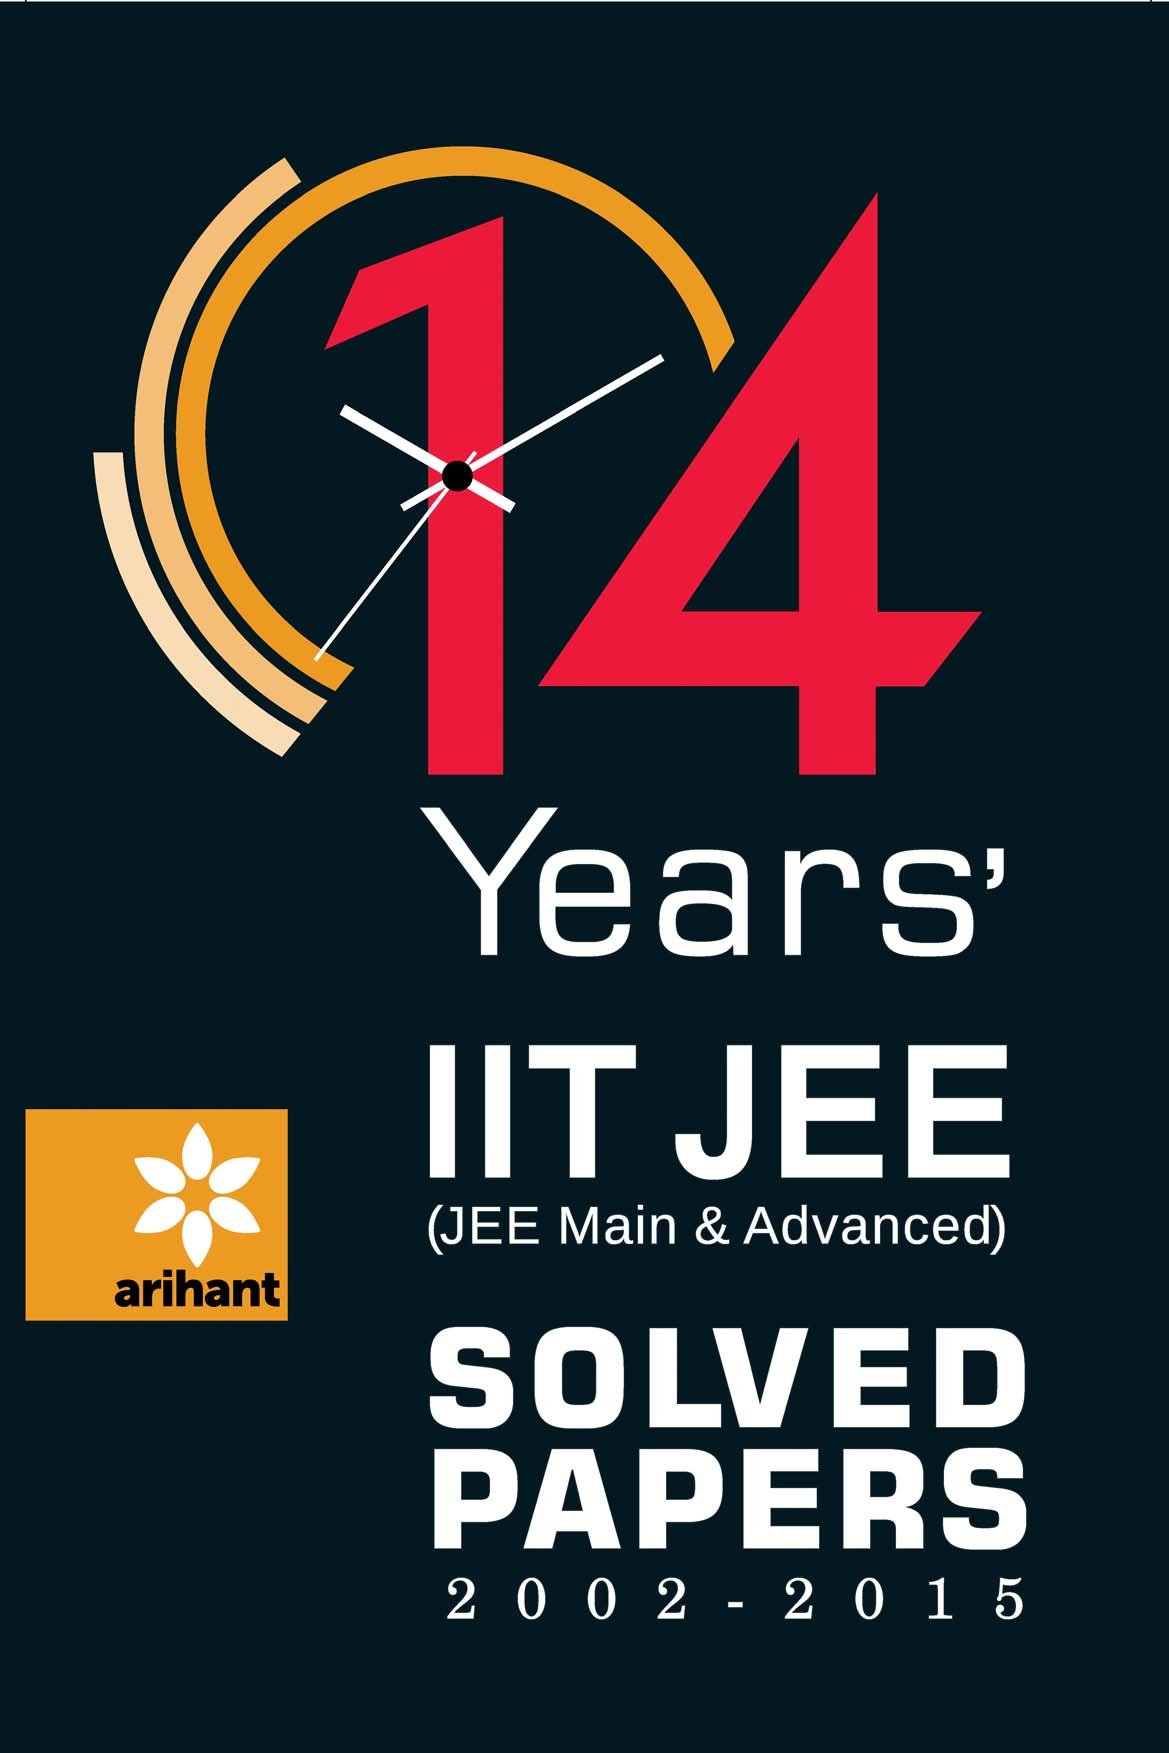 14 Years' (2002-2015) IIT JEE (JEE MAIN & ADVANCED) Solved Papers: RP  Singh, SC AgarwaL DC Pandey : 9789352037254: Amazon.com: Books